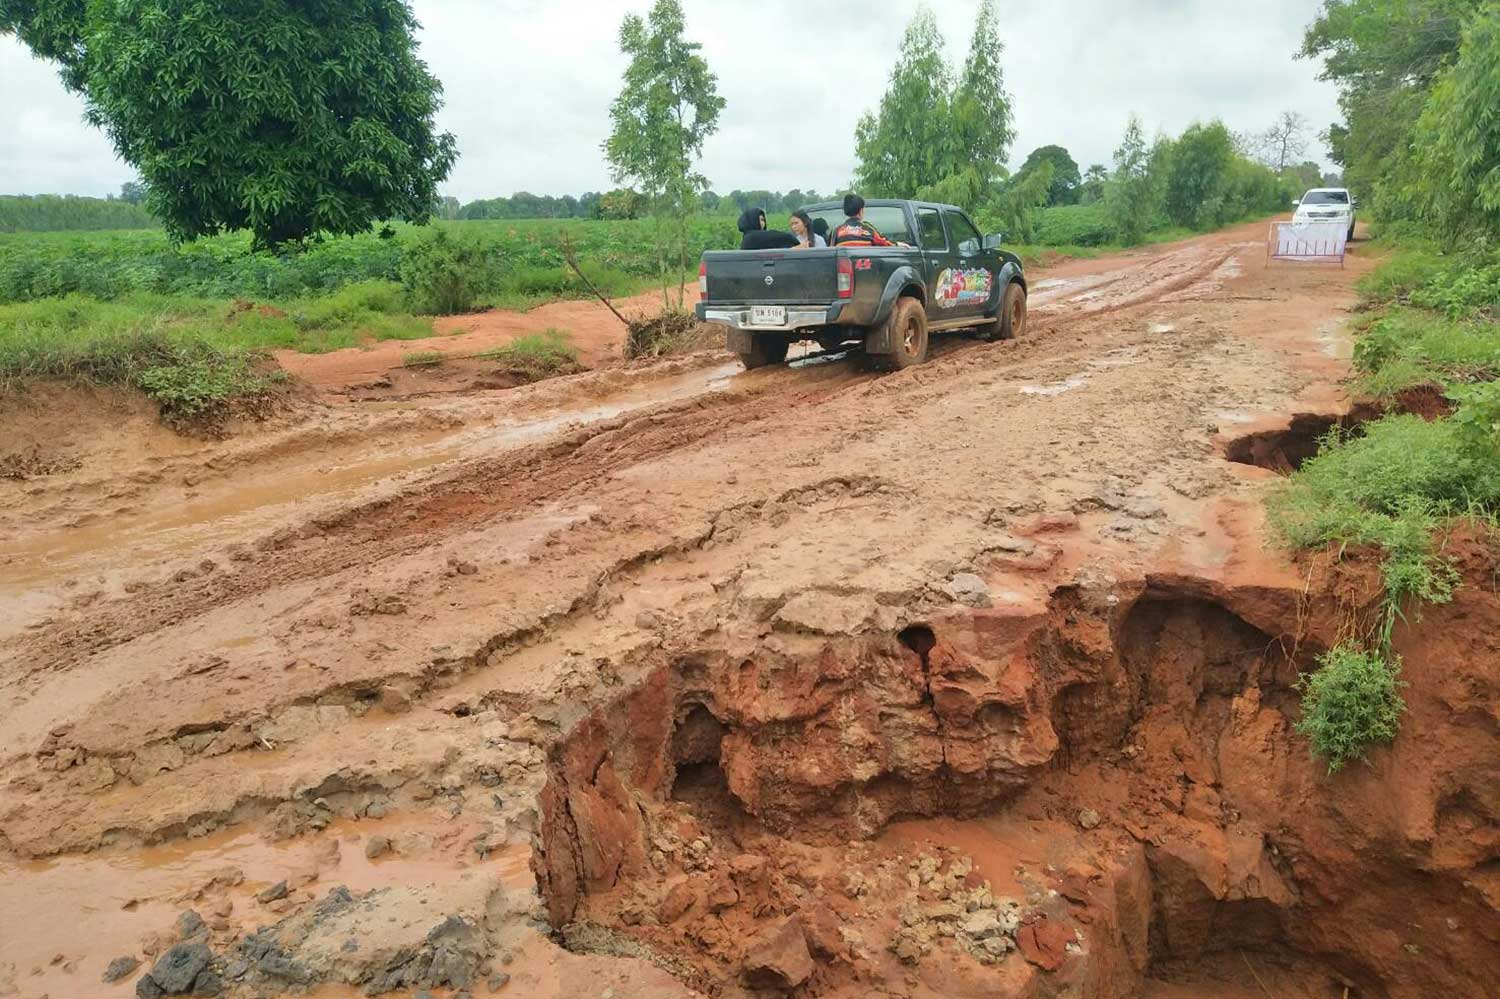 ็Heavy rain washed away this section of road at Phan Charoen village in Chumphuang district of Nakhon Ratchasima province. (Photo by Prasit Tangprasert)